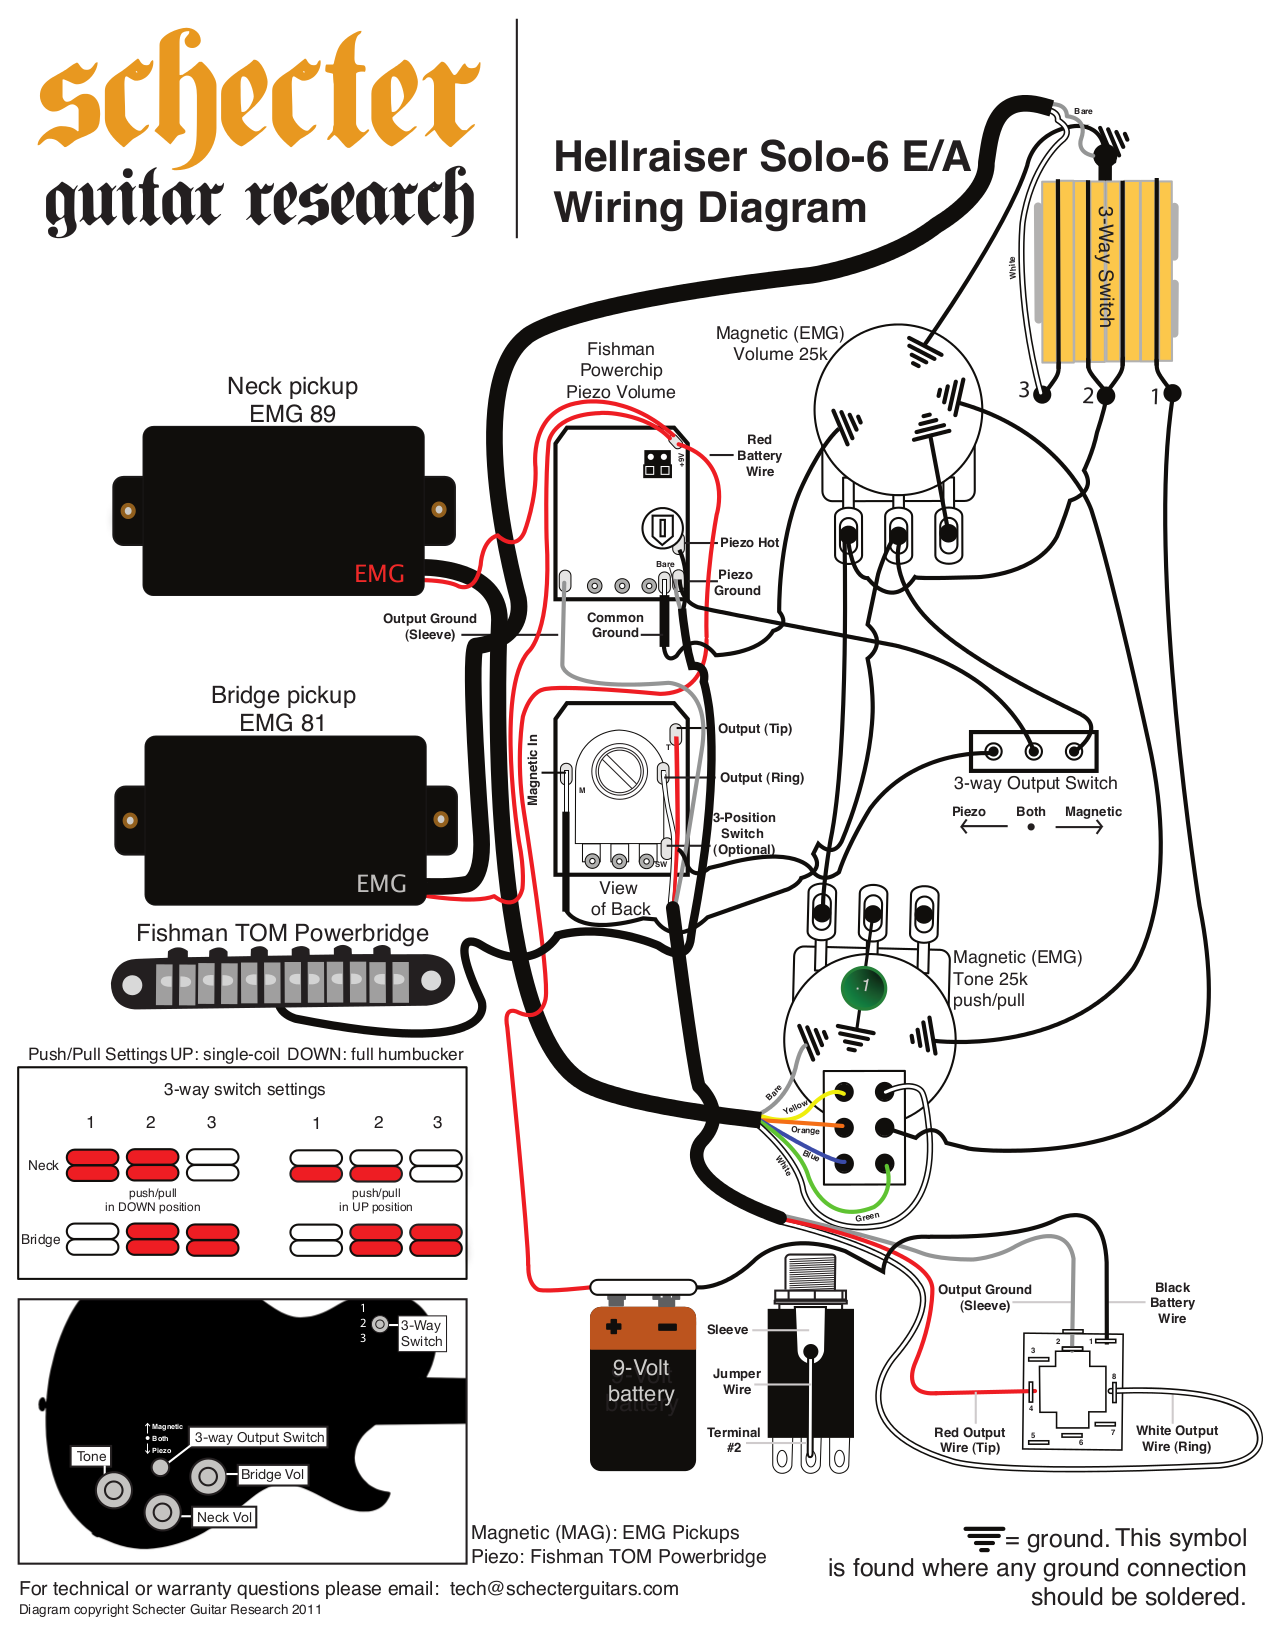 schecter guitars diamond series wiring diagram  schecter